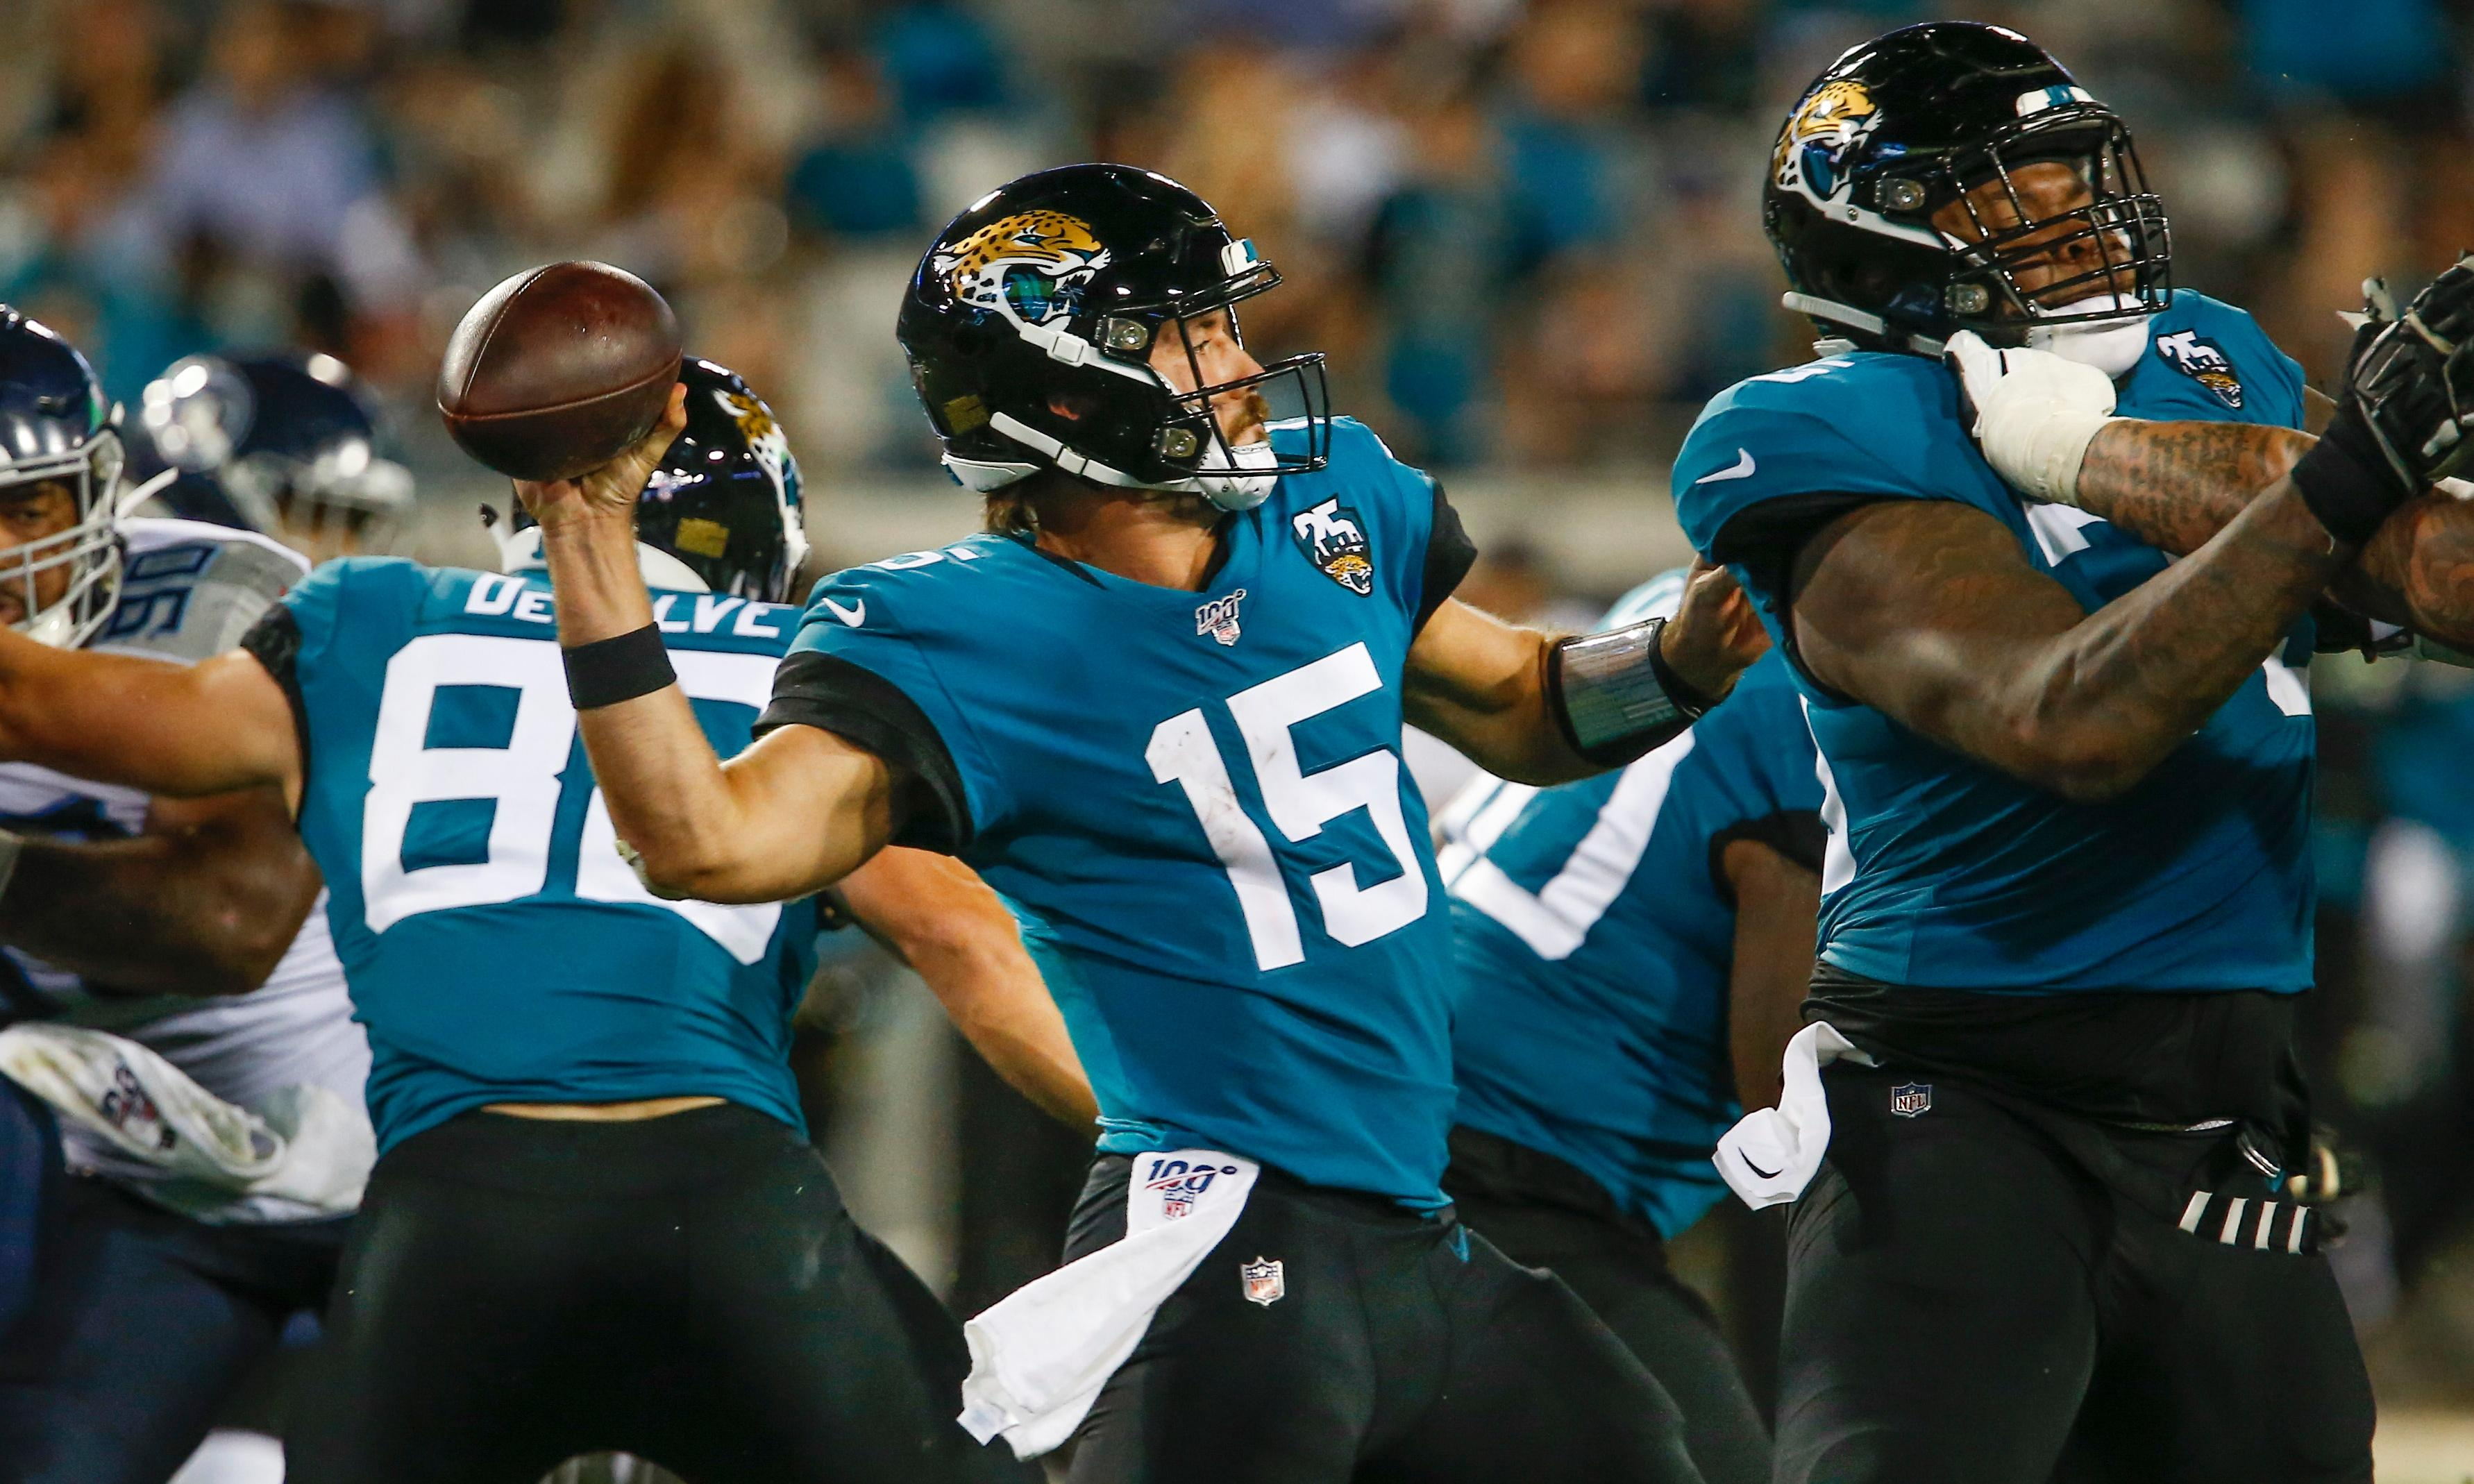 Gardner Minshew and Jaguars' defense stand tall in win over Tennessee Titans